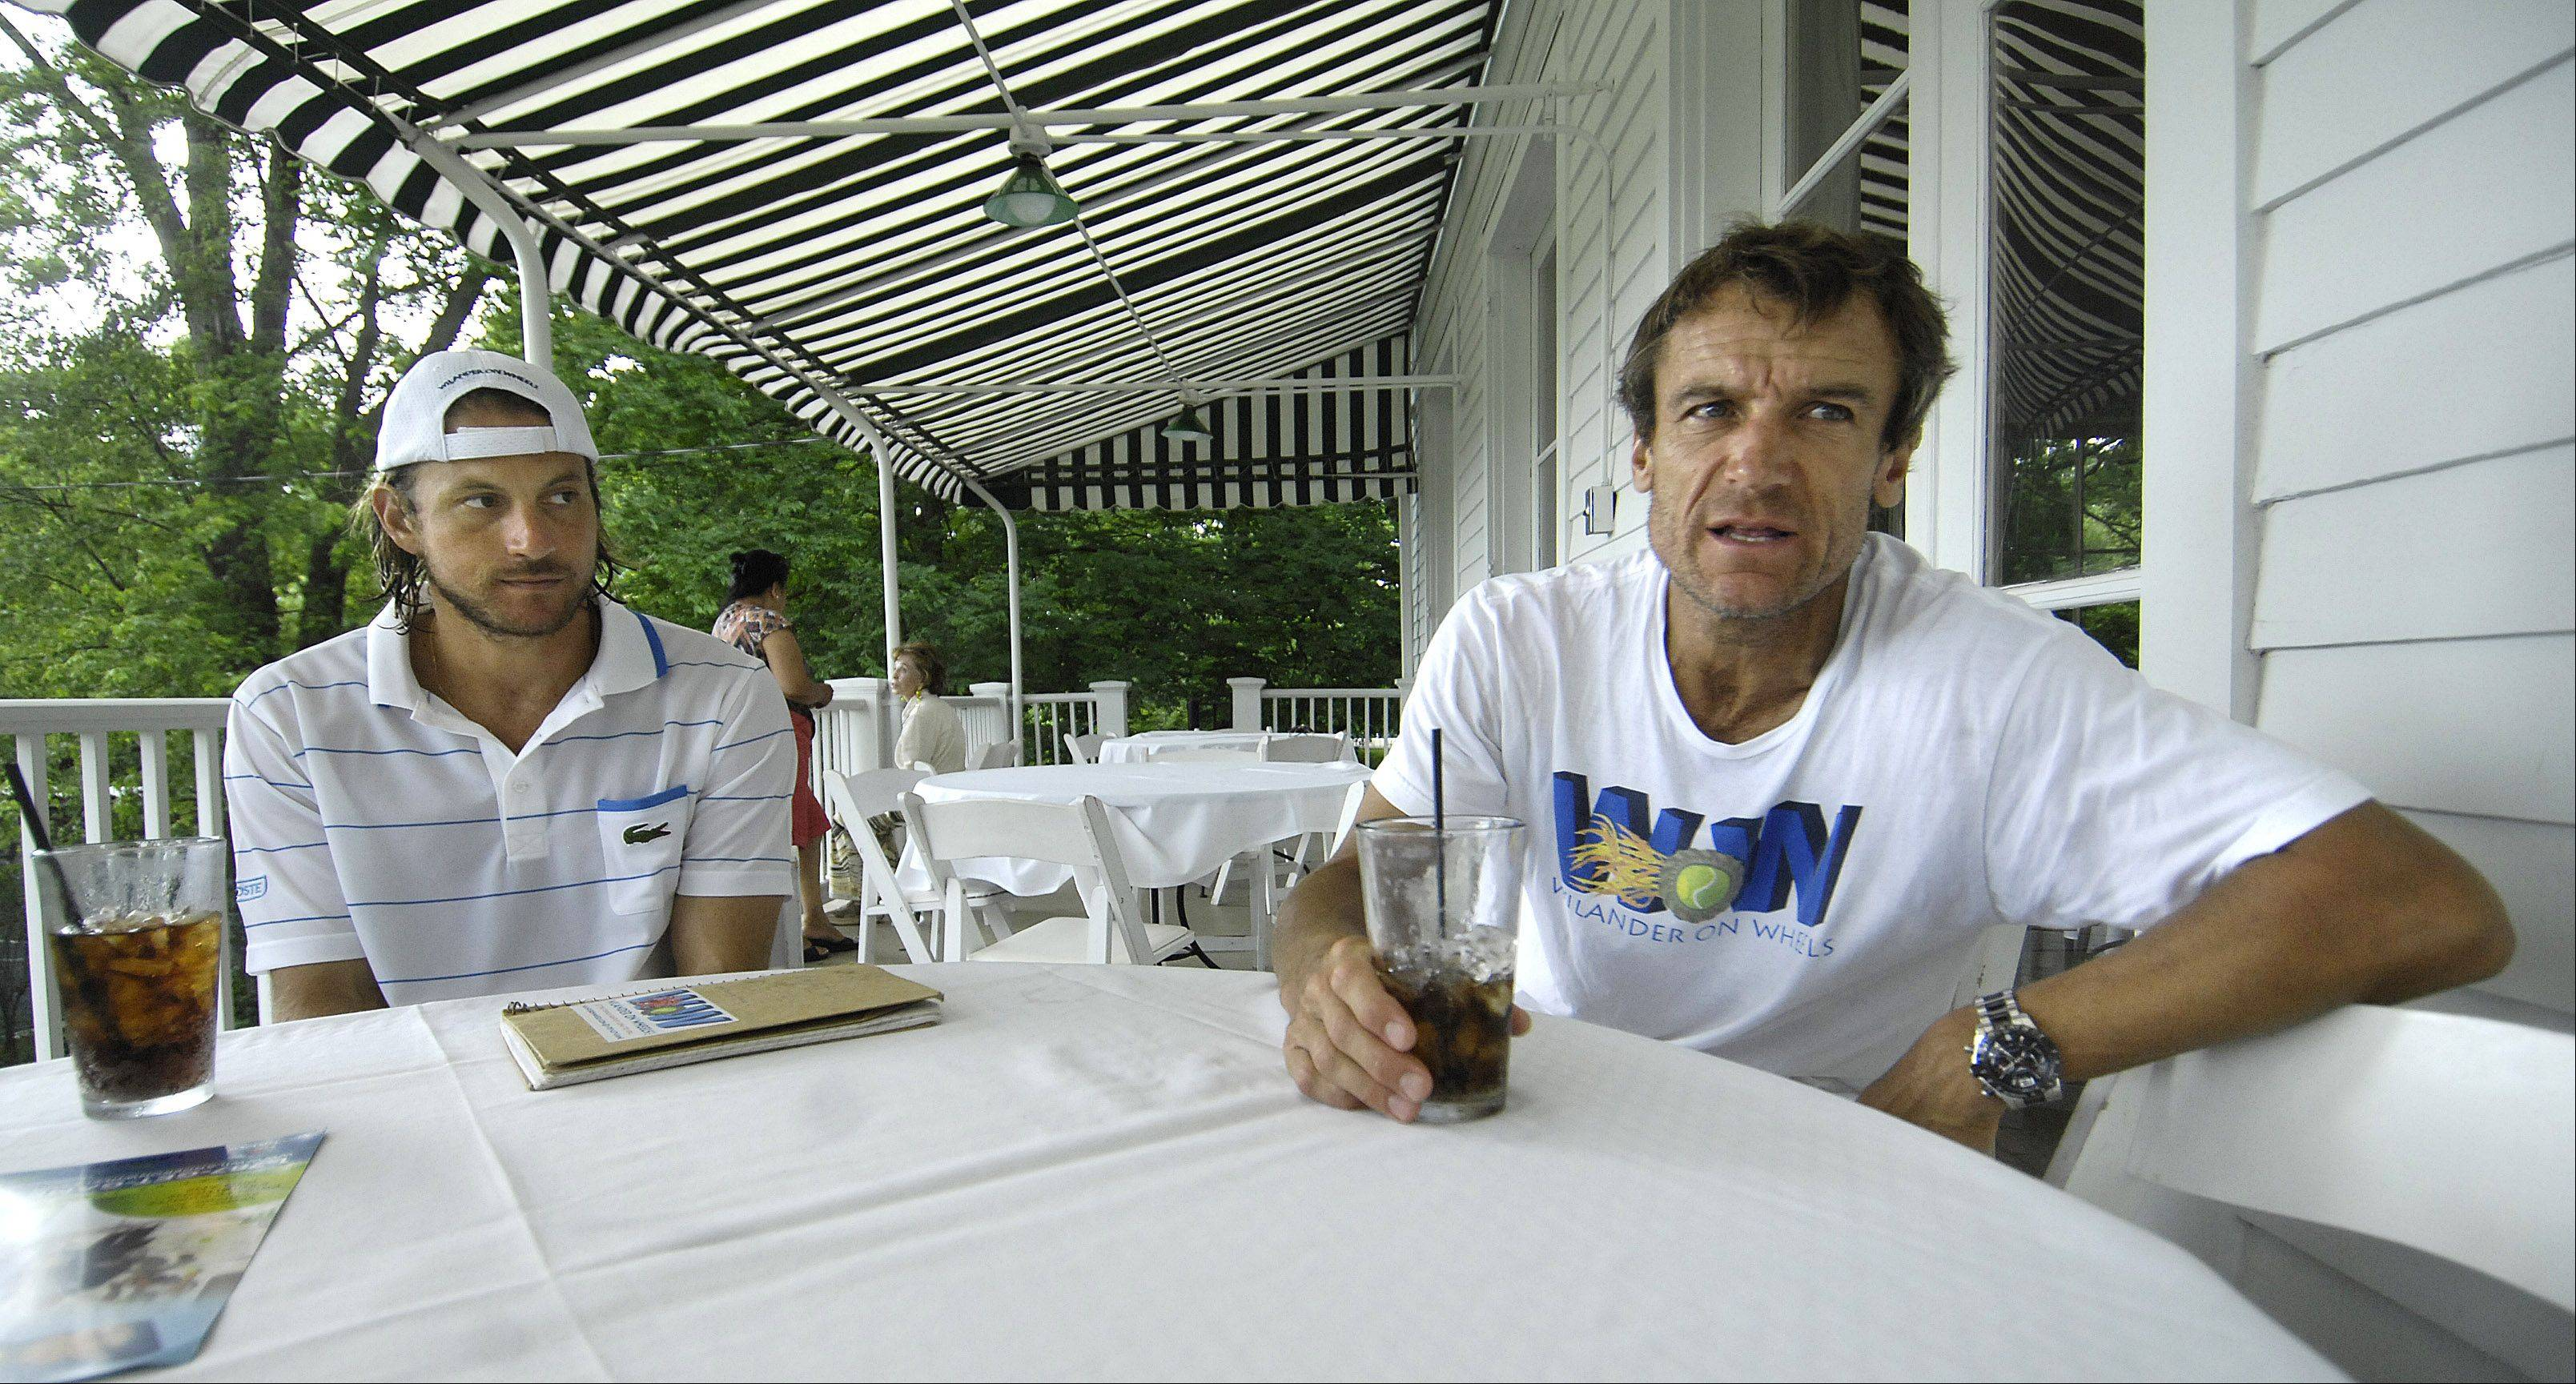 Tennis great Mats Wilander, right, with business partner Cameron Lickle at the Dunham Woods Riding Club in Wayne Wednesday. Daily Herald reporter — and tennis fanatic — Lenore Adkins had a chance to chat with Wilander last week.